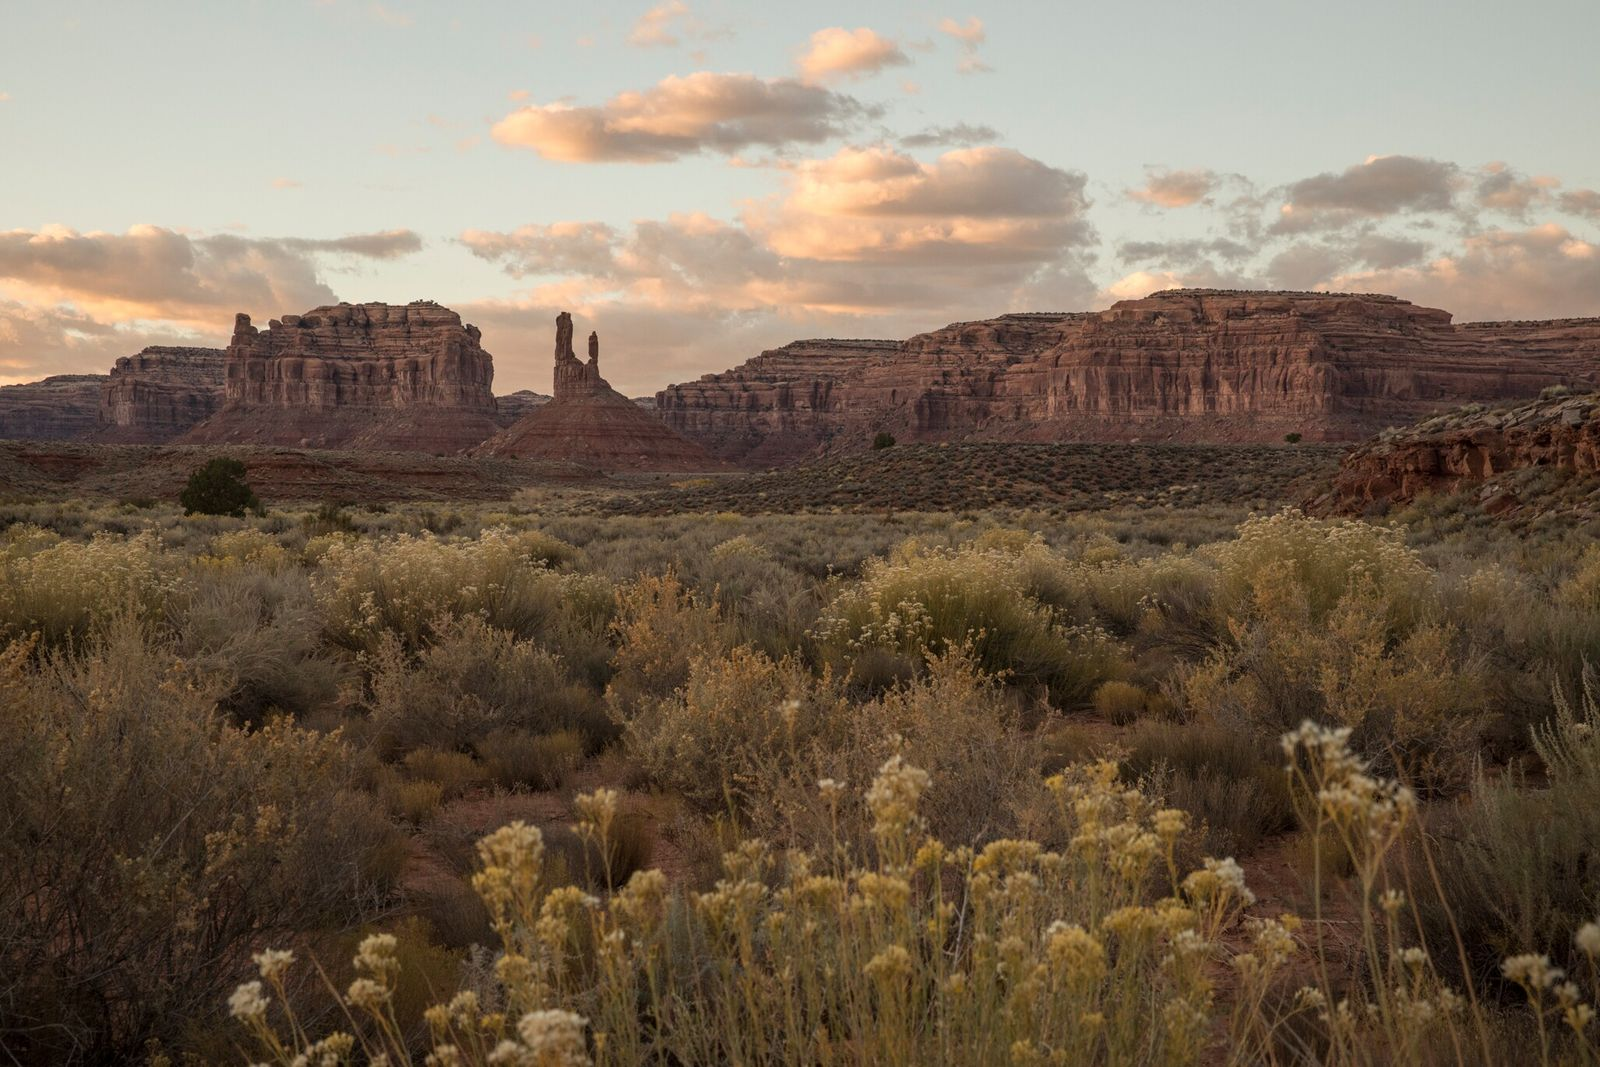 Rock formations in Valley of the Gods in Bears Ears National Monument.